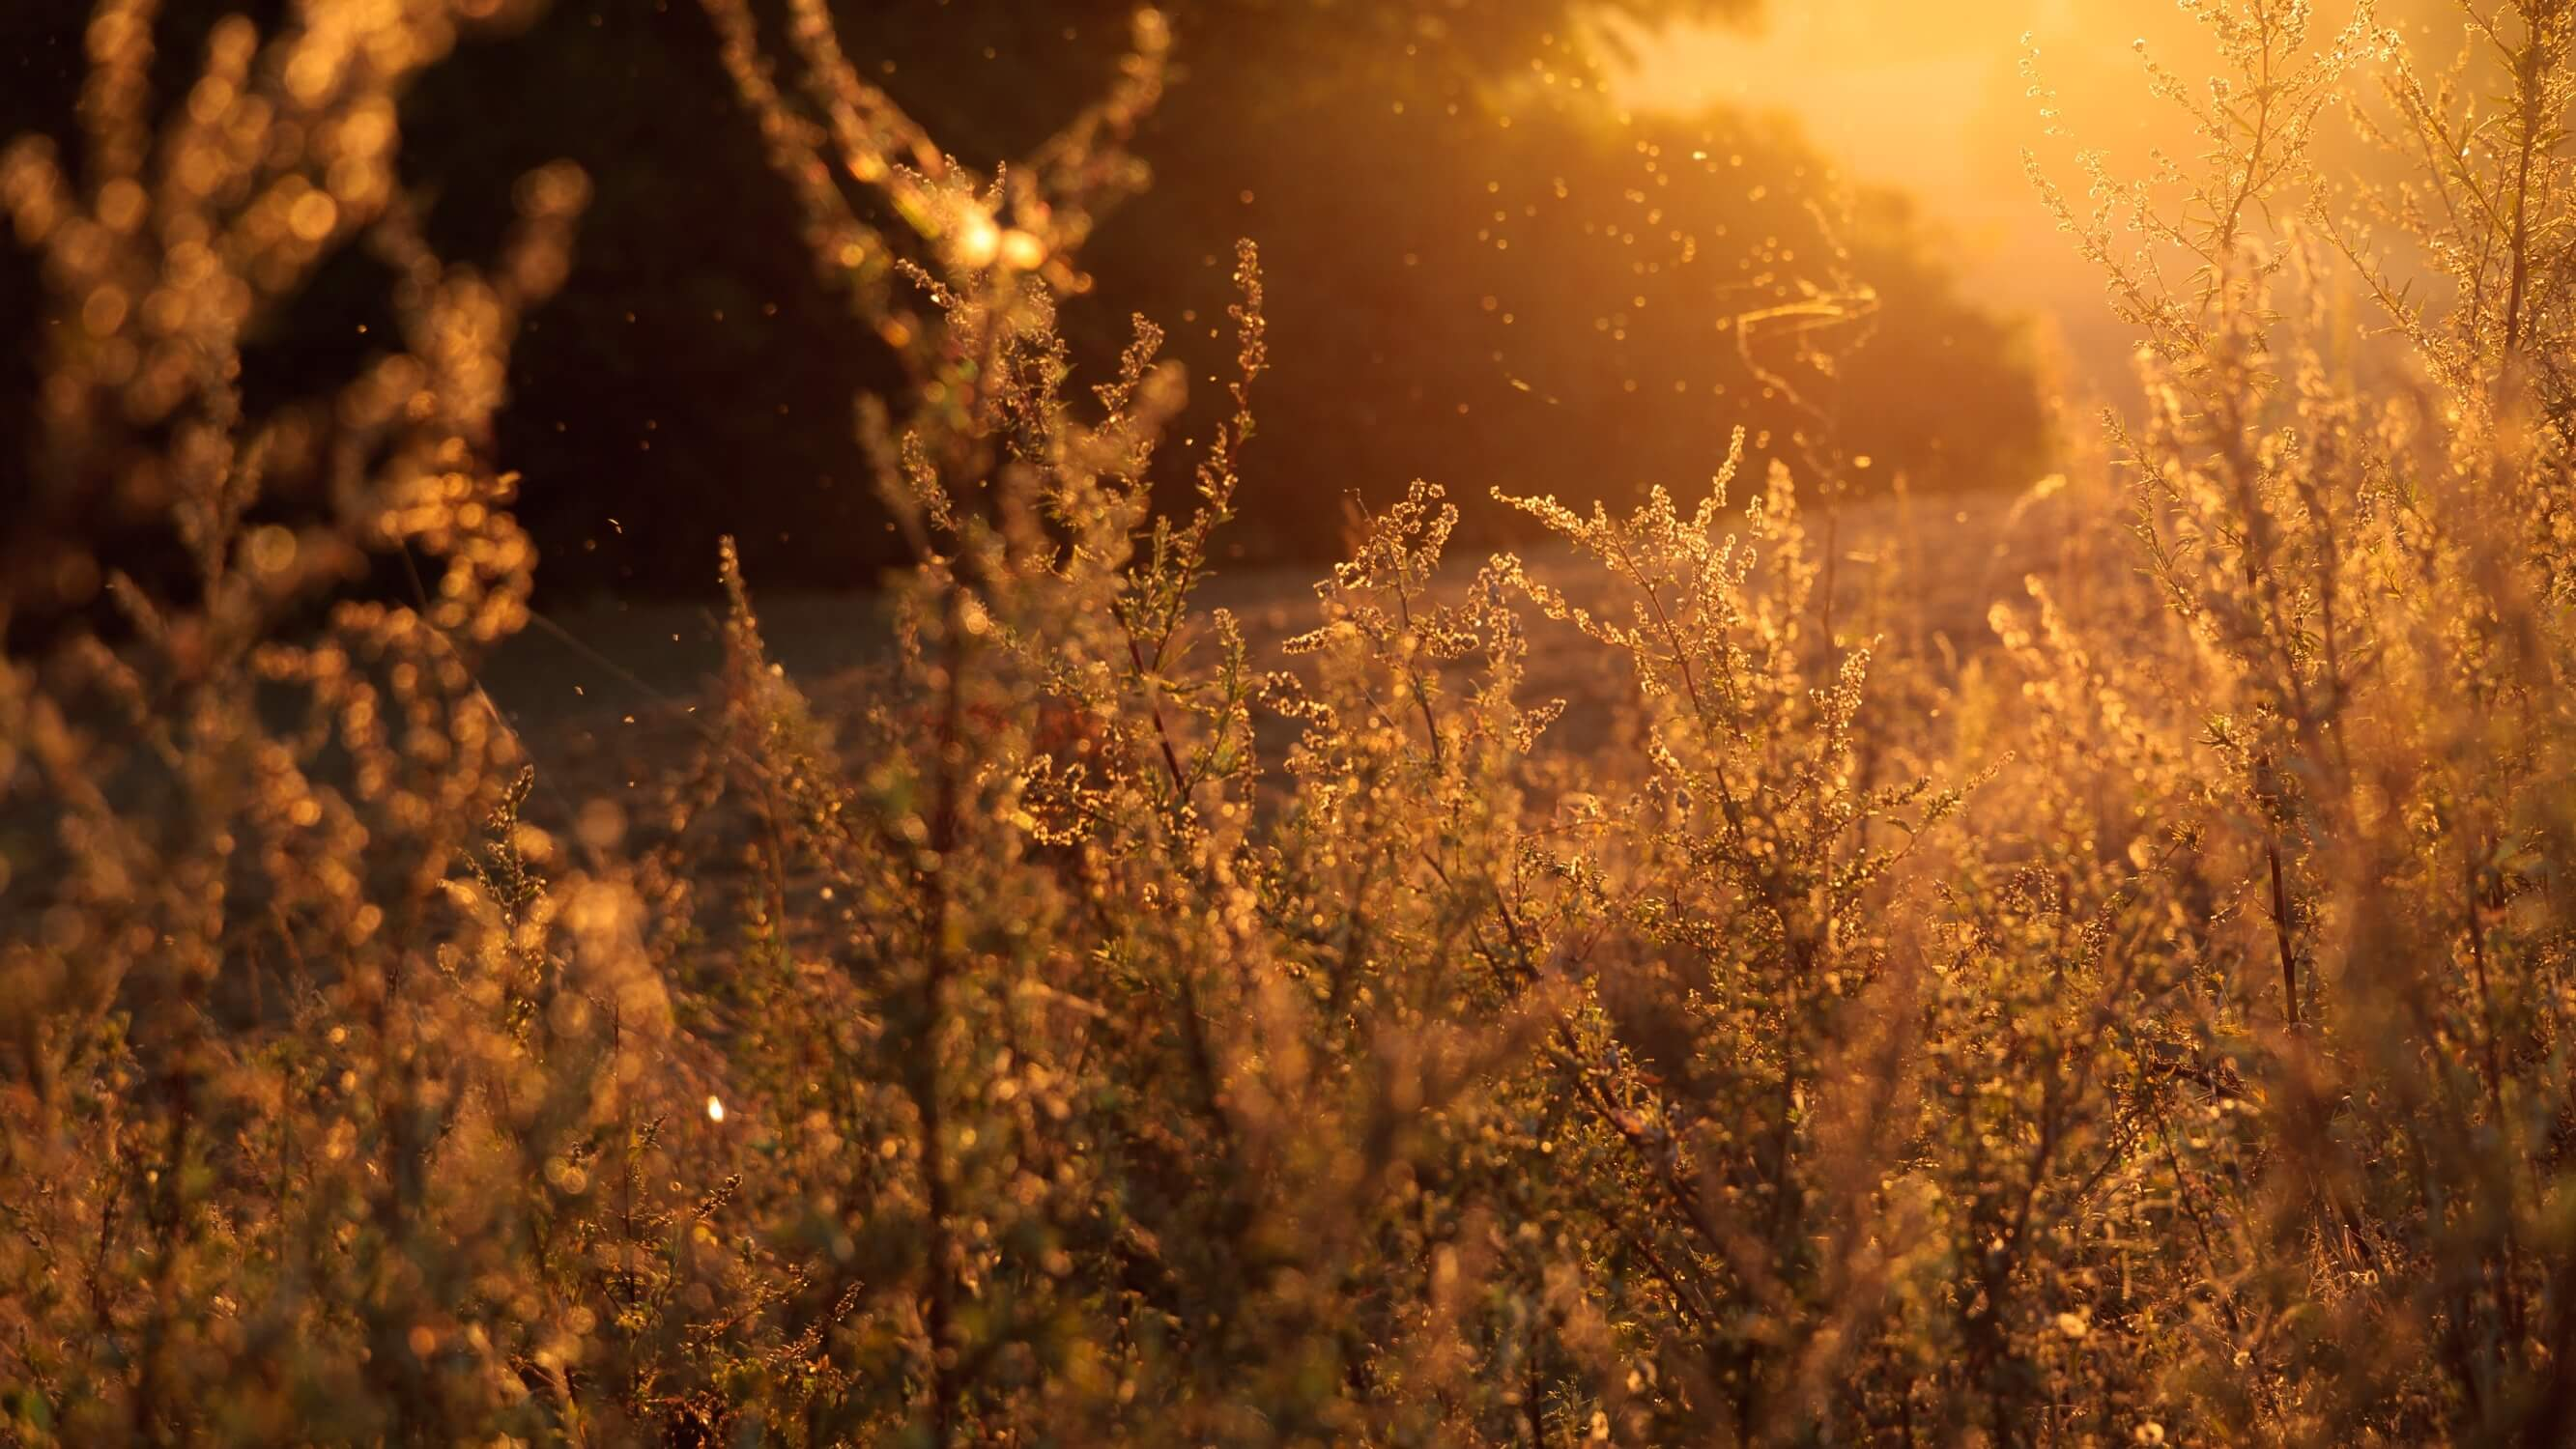 dust or hay allergies are common allergy types